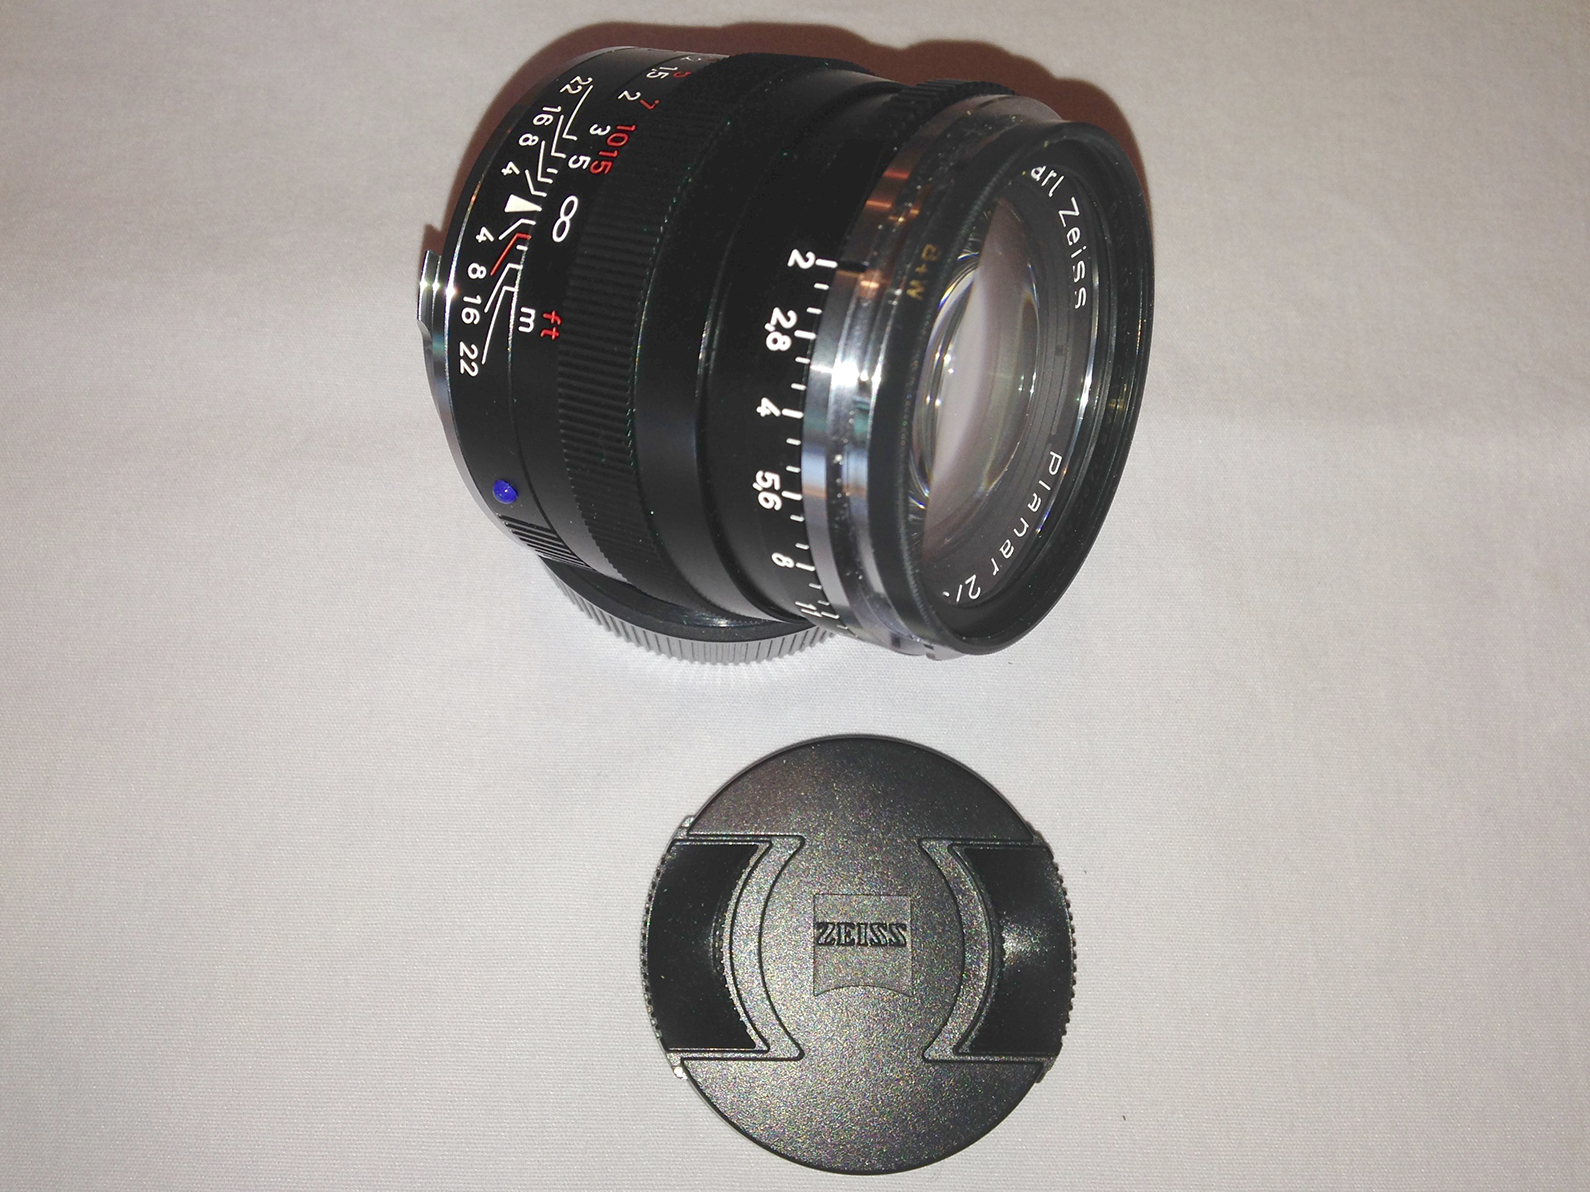 A Tale of Two M Lenses (Part 2 of 2 Parts)